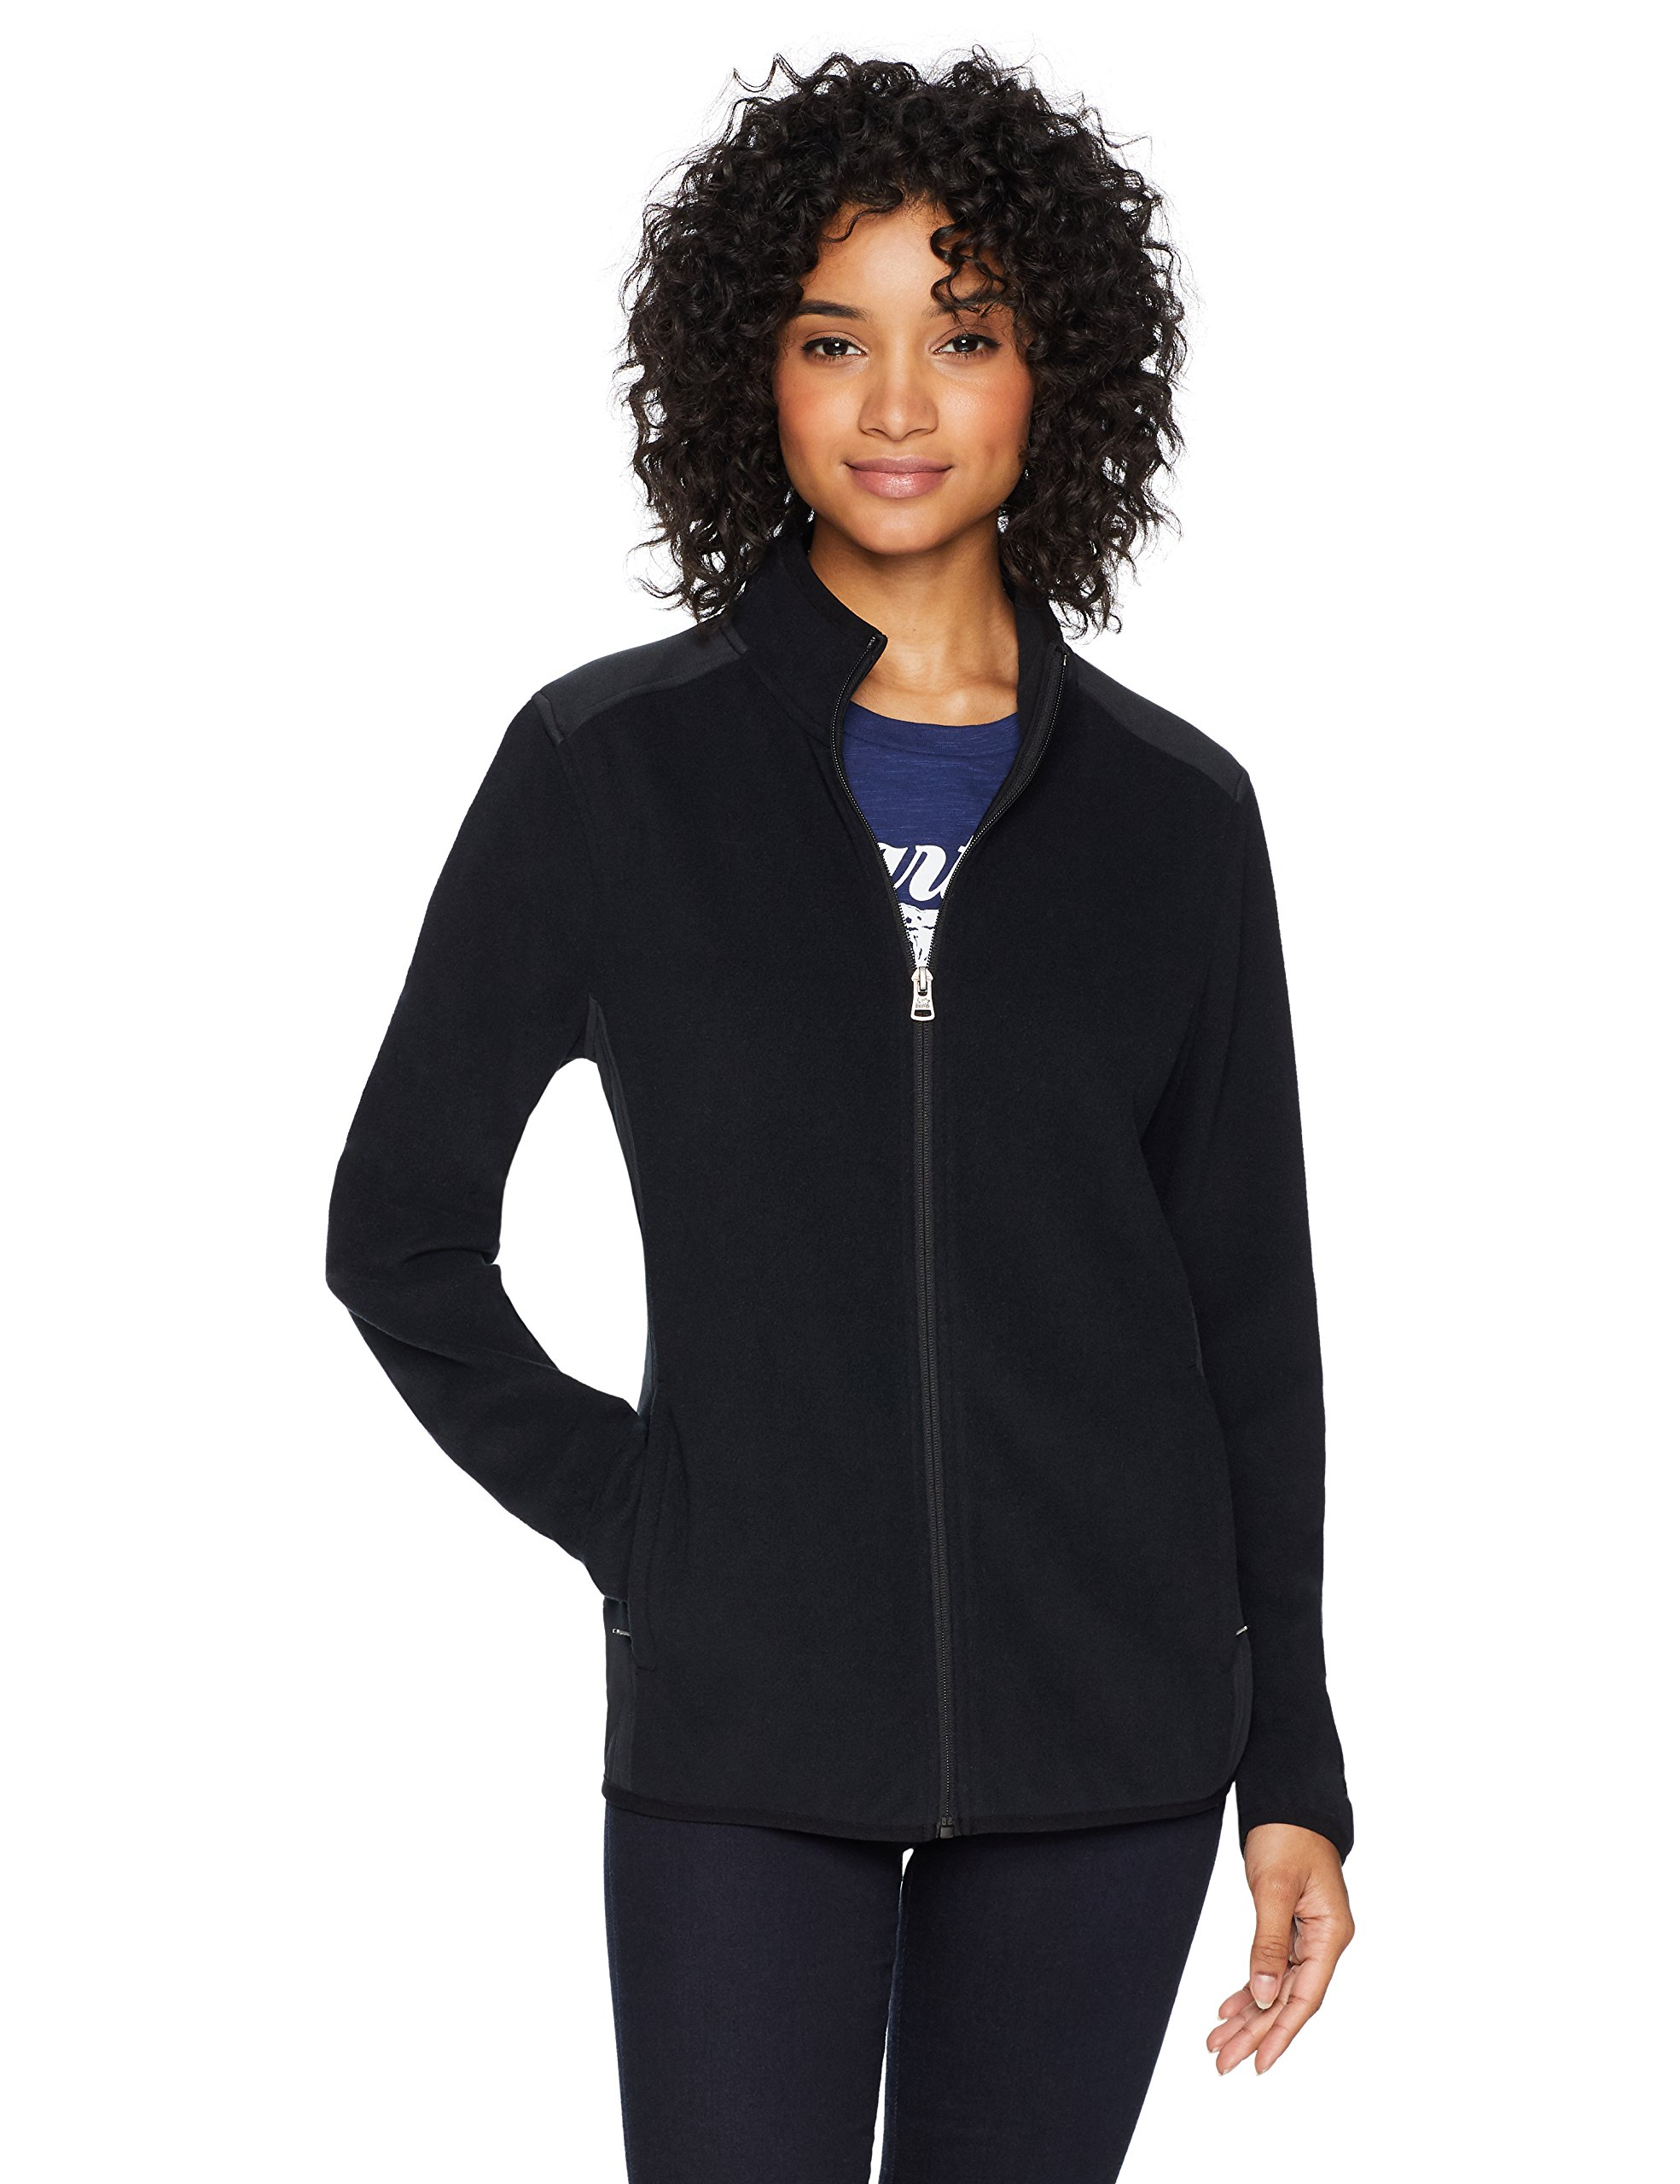 Starter Women's Polar Fleece Jacket, Prime Exclusive, Black, Large